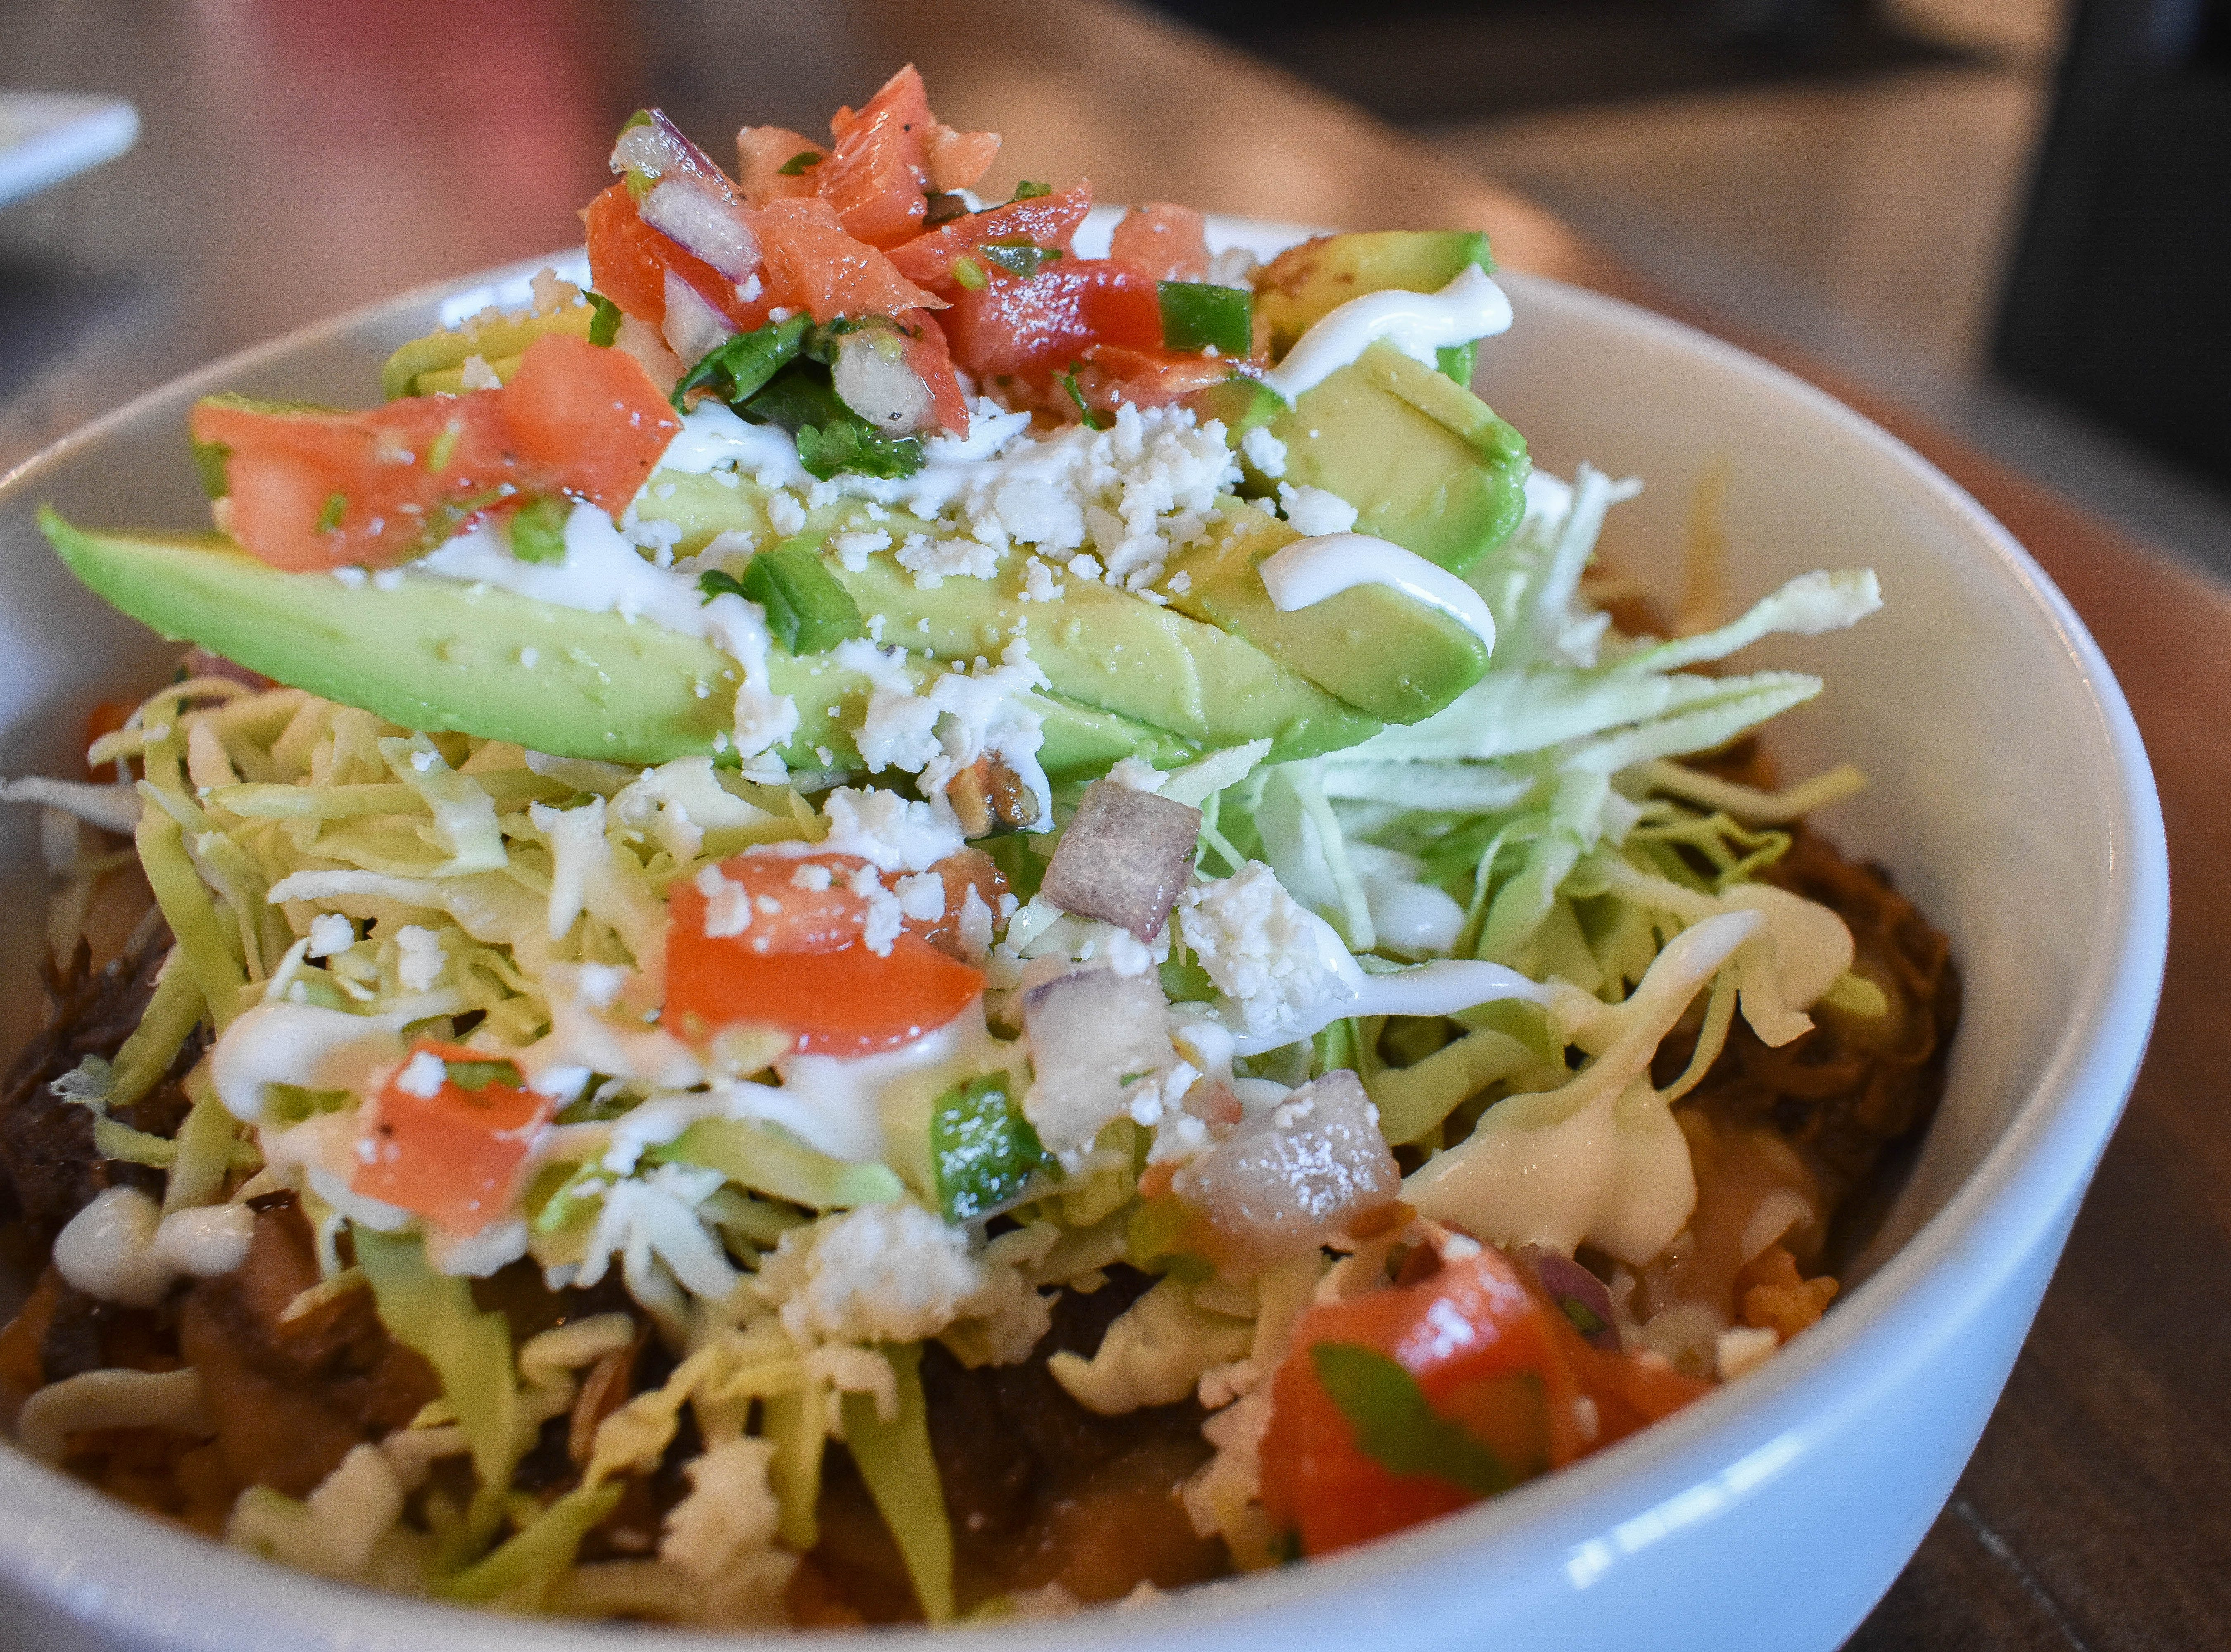 PAZ CANTINA: Buy one entree and get a second for half off. Wash it down with buy-one, get-one-for-a-penny draft beers.